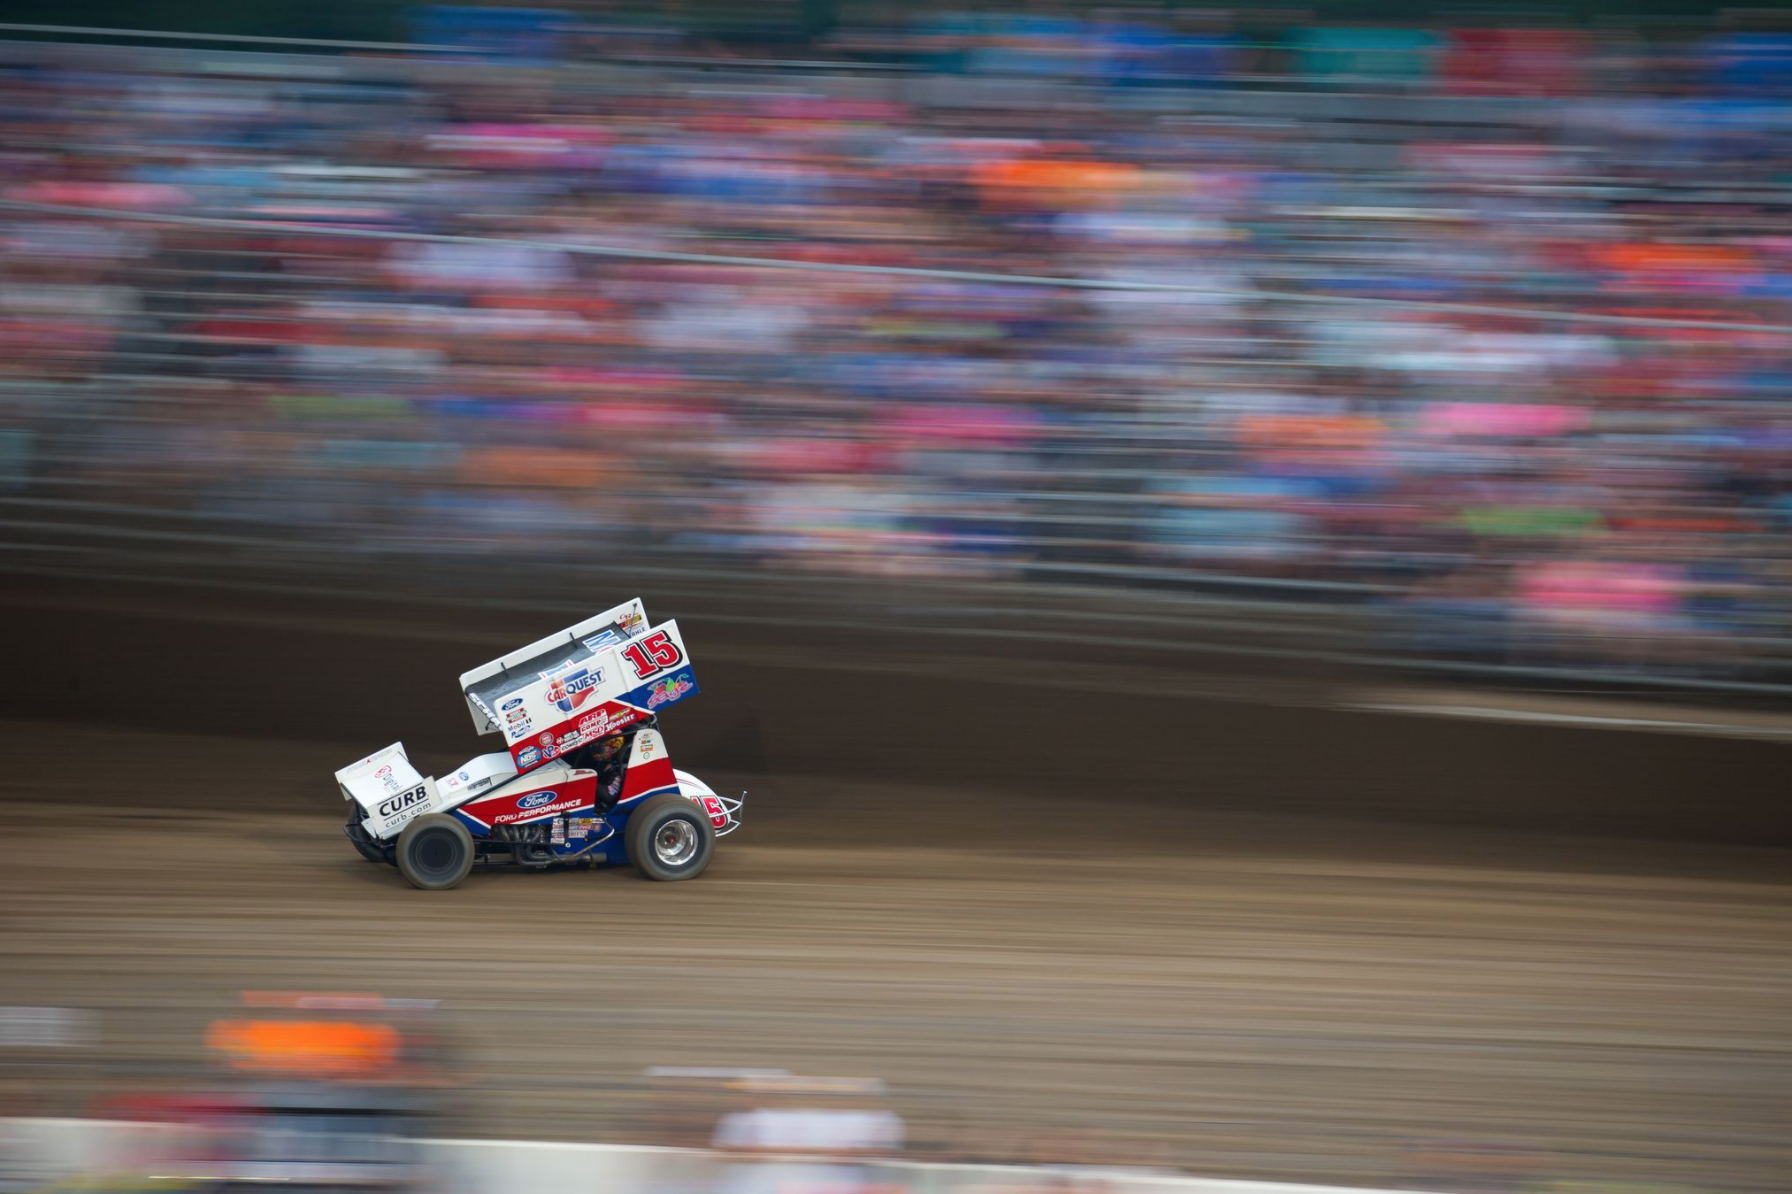 tony stewart racing, donny schatz, world of outlaws